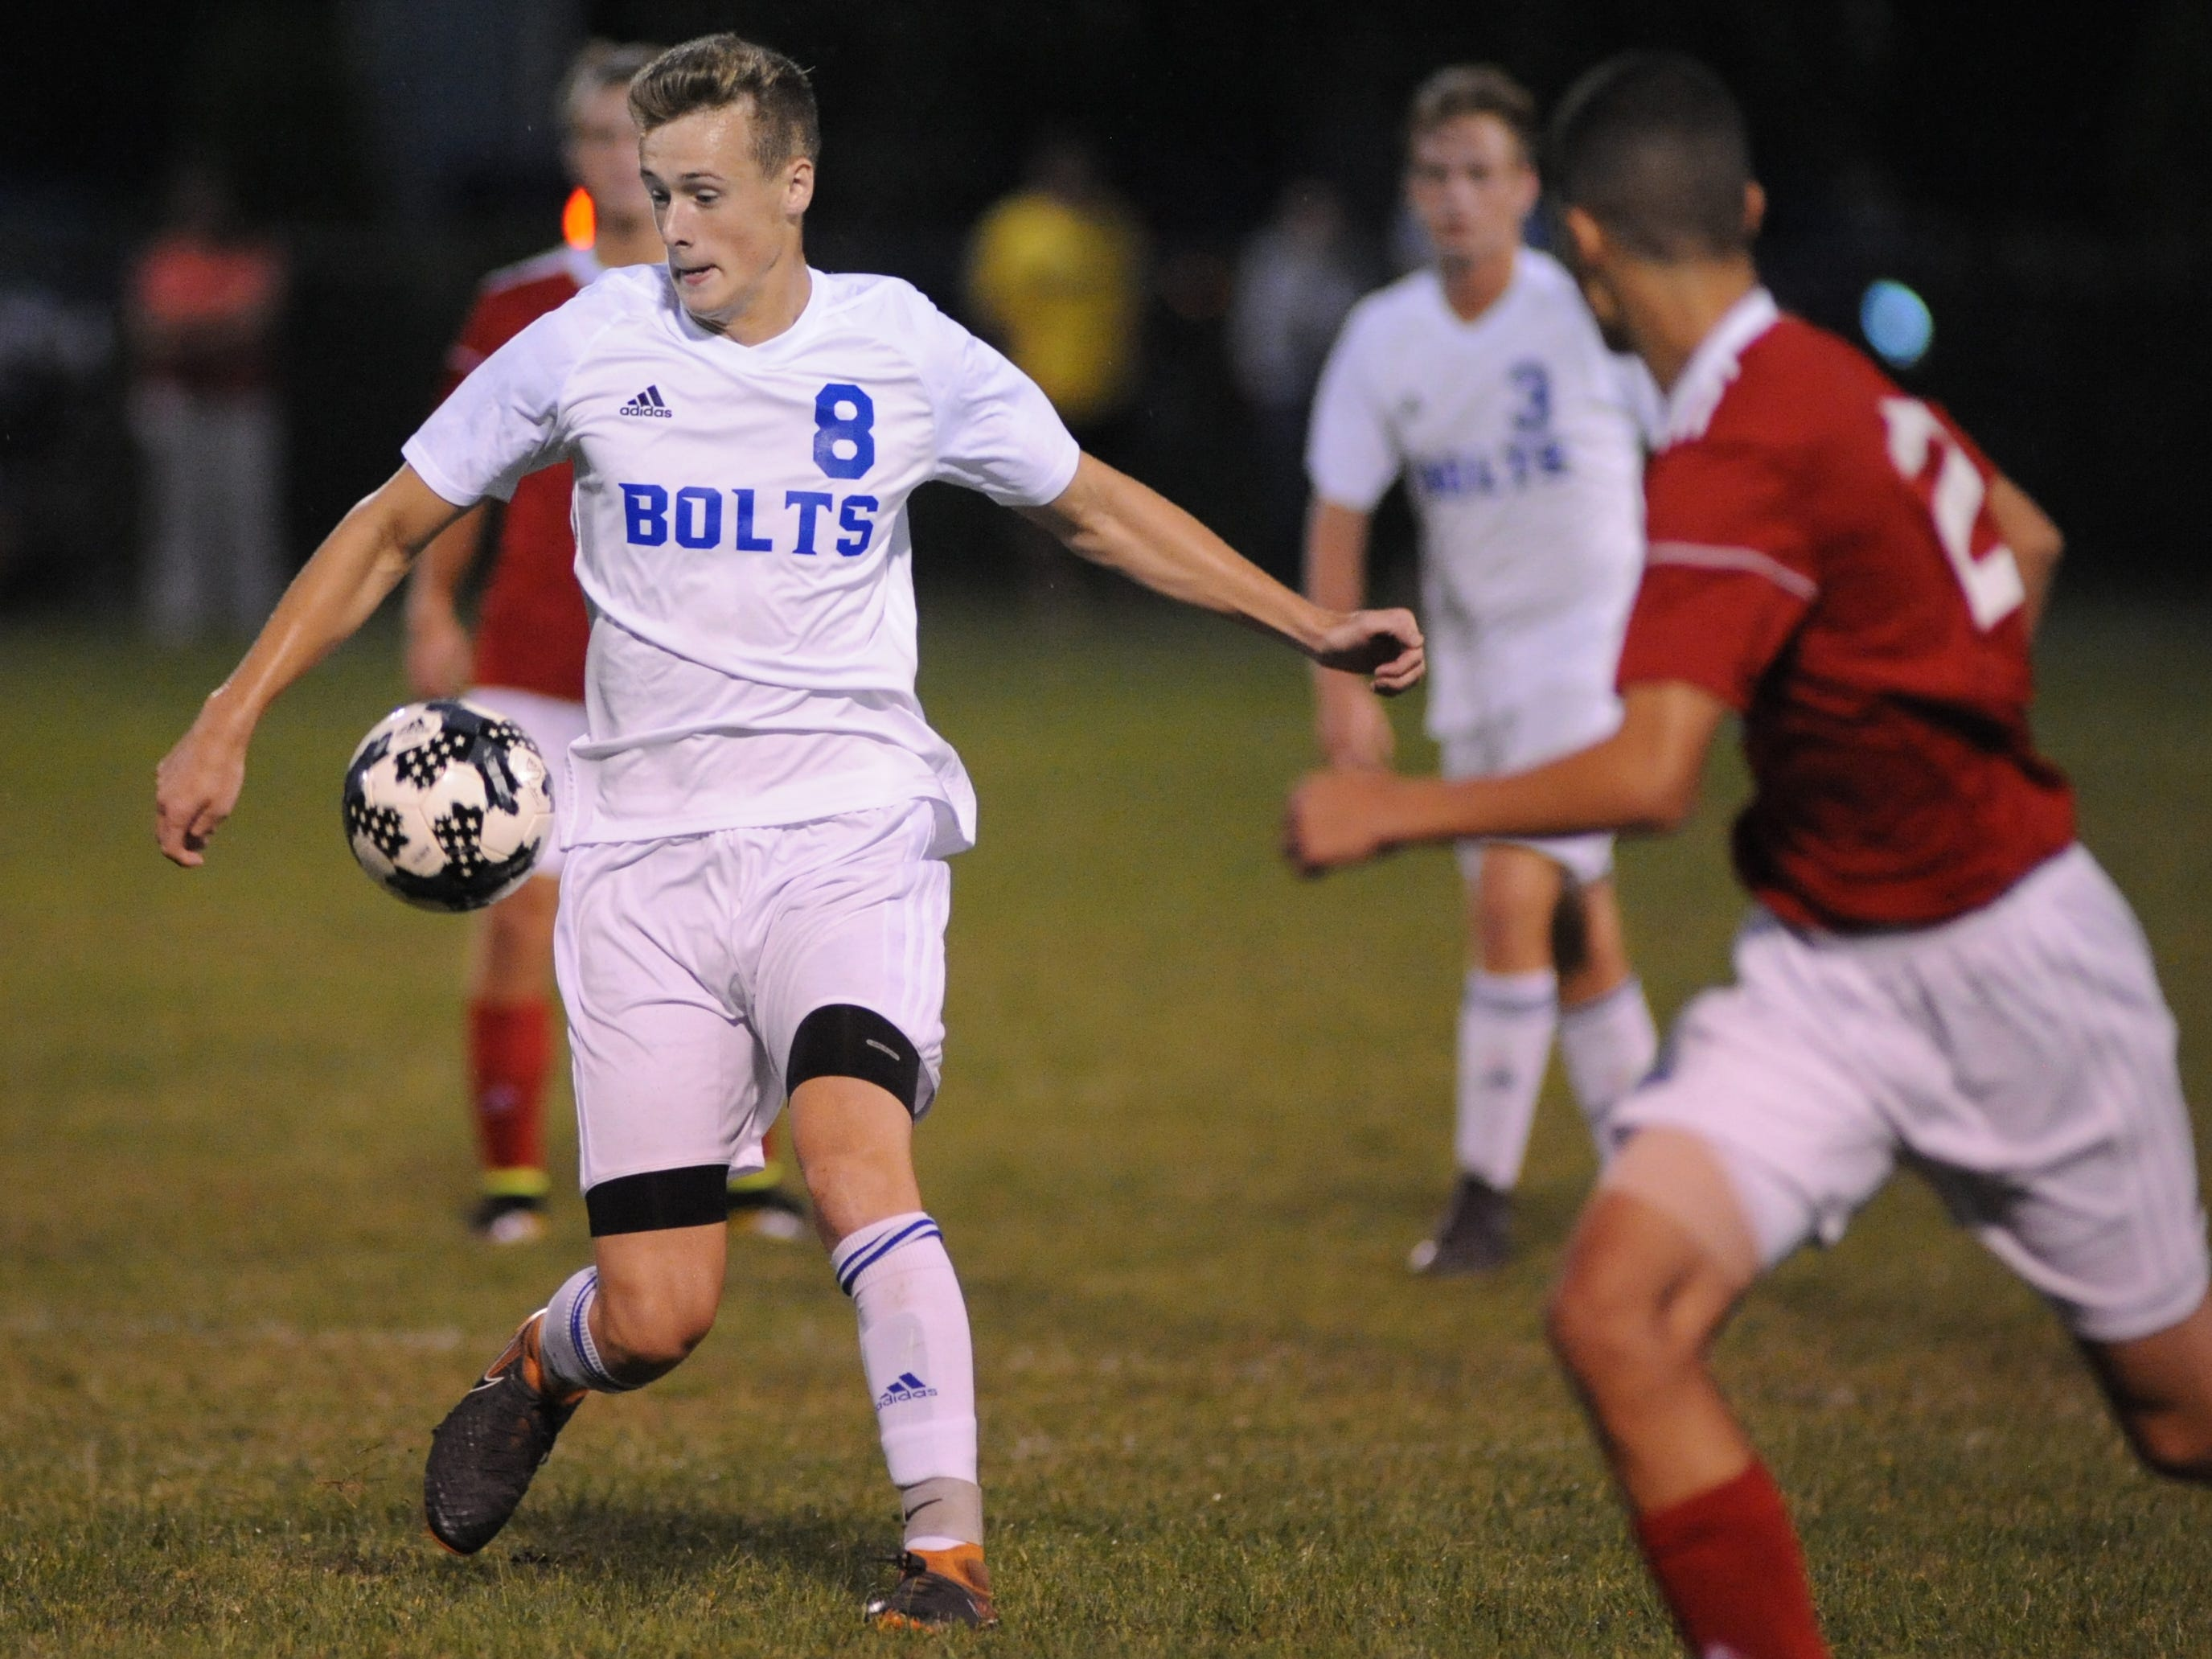 Millville's Matt Price moves the ball during a boys soccer game against Vineland at Romano Sports Complex in Vineland, Monday, Sept. 17, 2018.